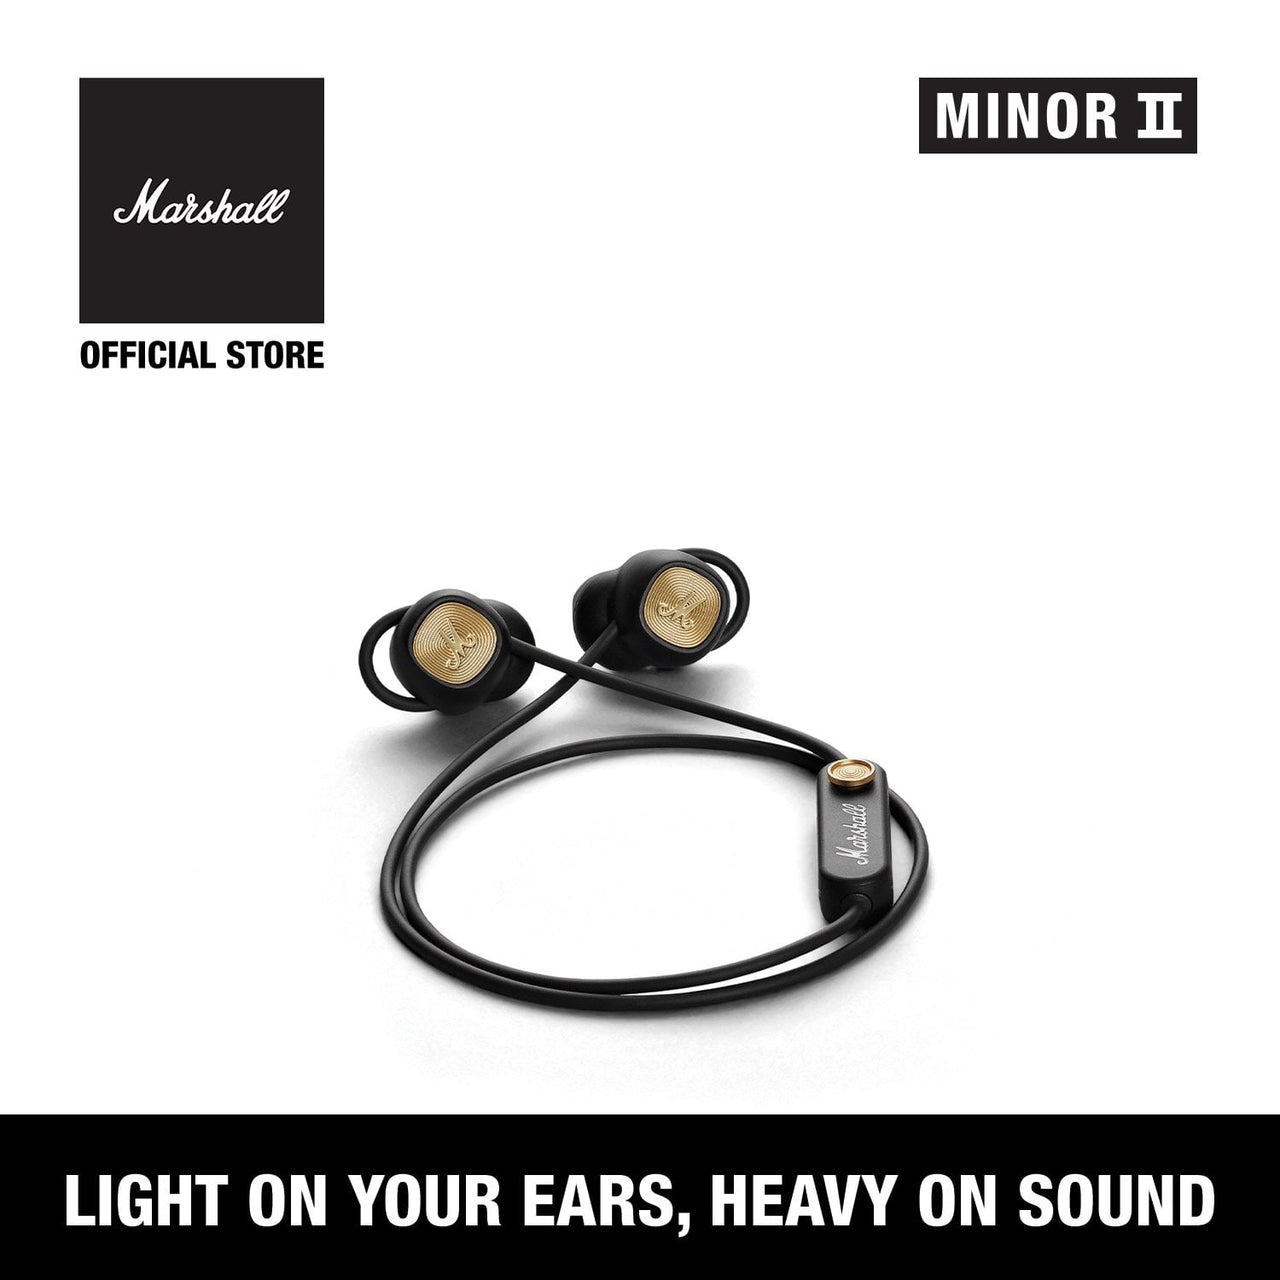 Minor II Bluetooth Black [EVENT EXCLUSIVE], Headphones, Marshall Headphones, ASH Asia